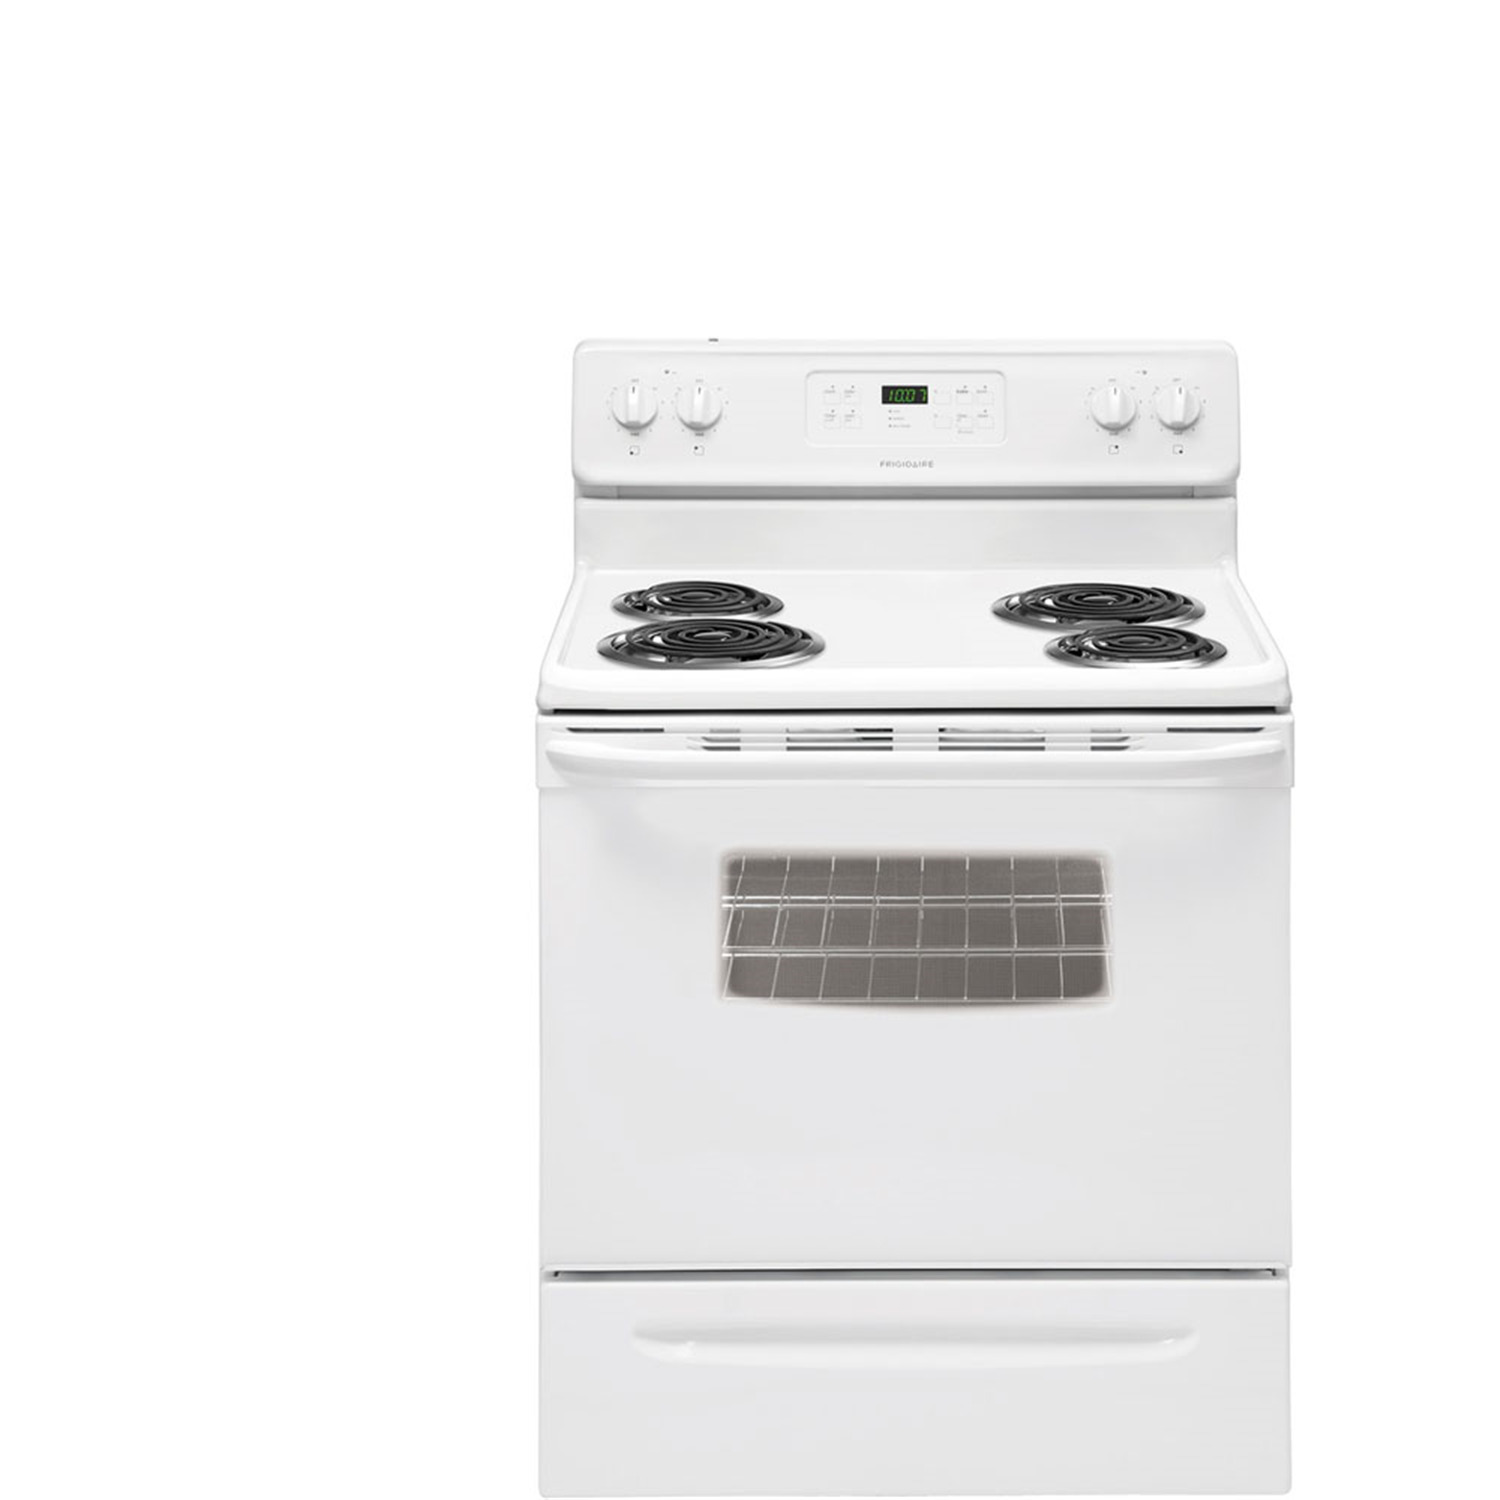 Frigidaire 30 In. Coil Top Freestanding Electric Range White